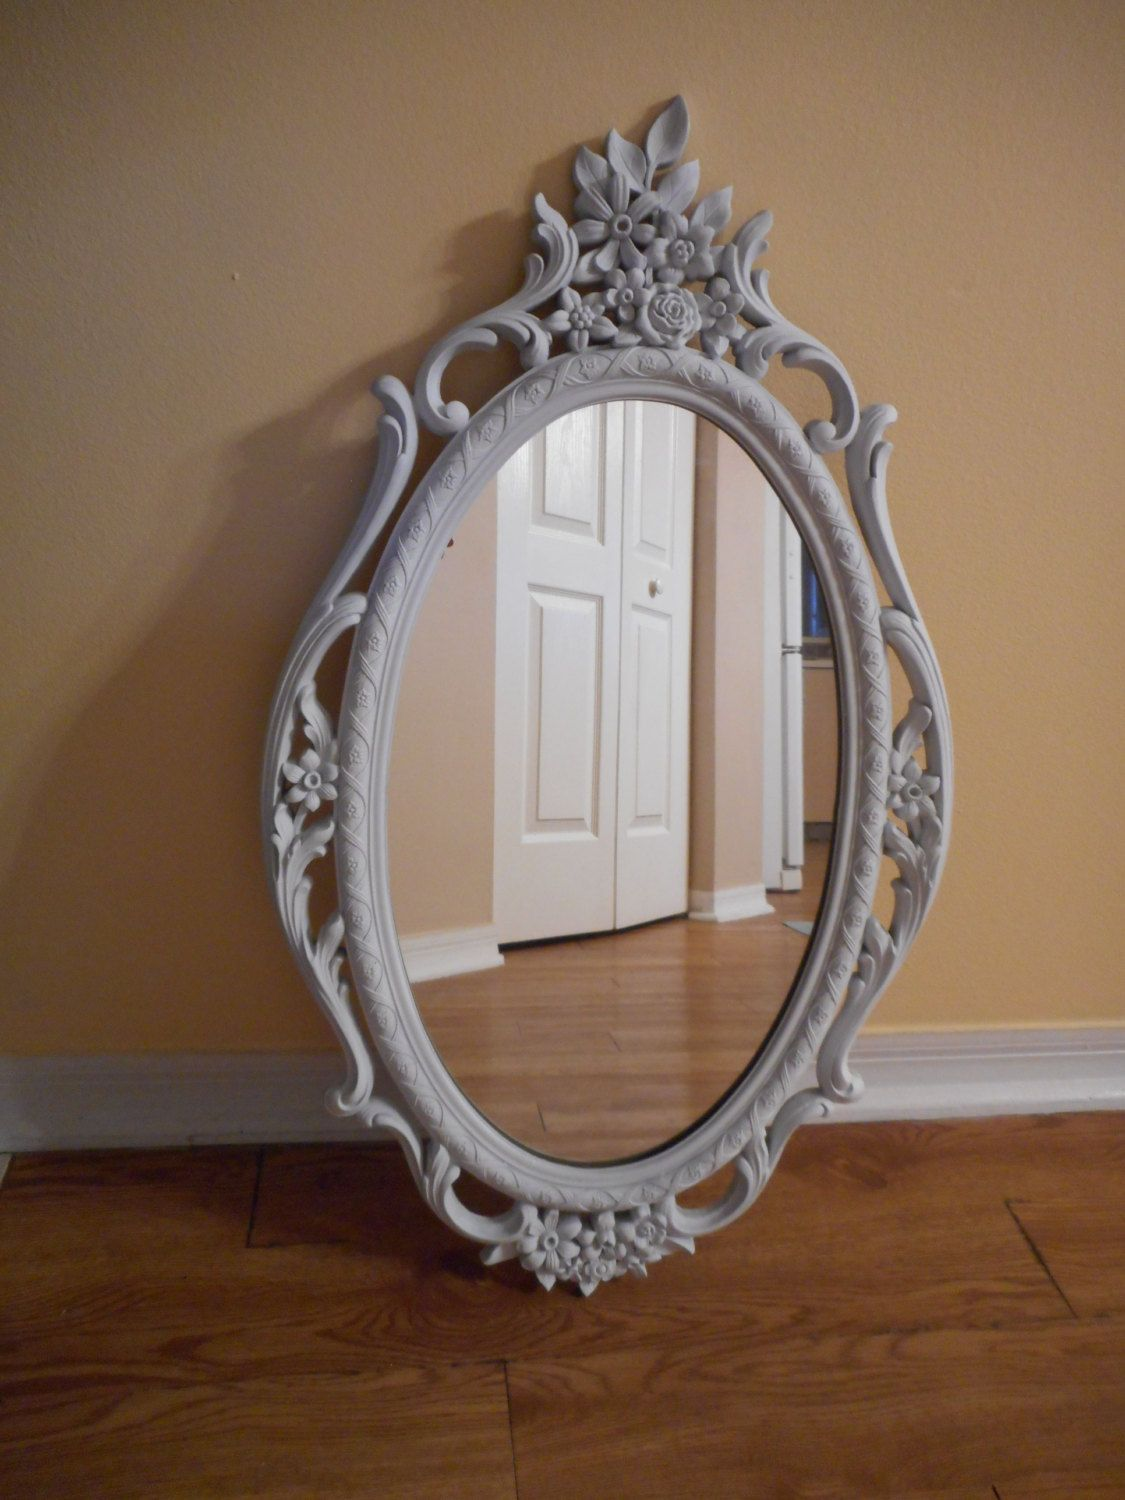 Sold Authentic Vintage Large 1965 Victorian Floral Syroco Mirror 5114 White Ornate Wall Mirror Chippy Painted Shab Shabby Chic Beach Vintage Large Mirror